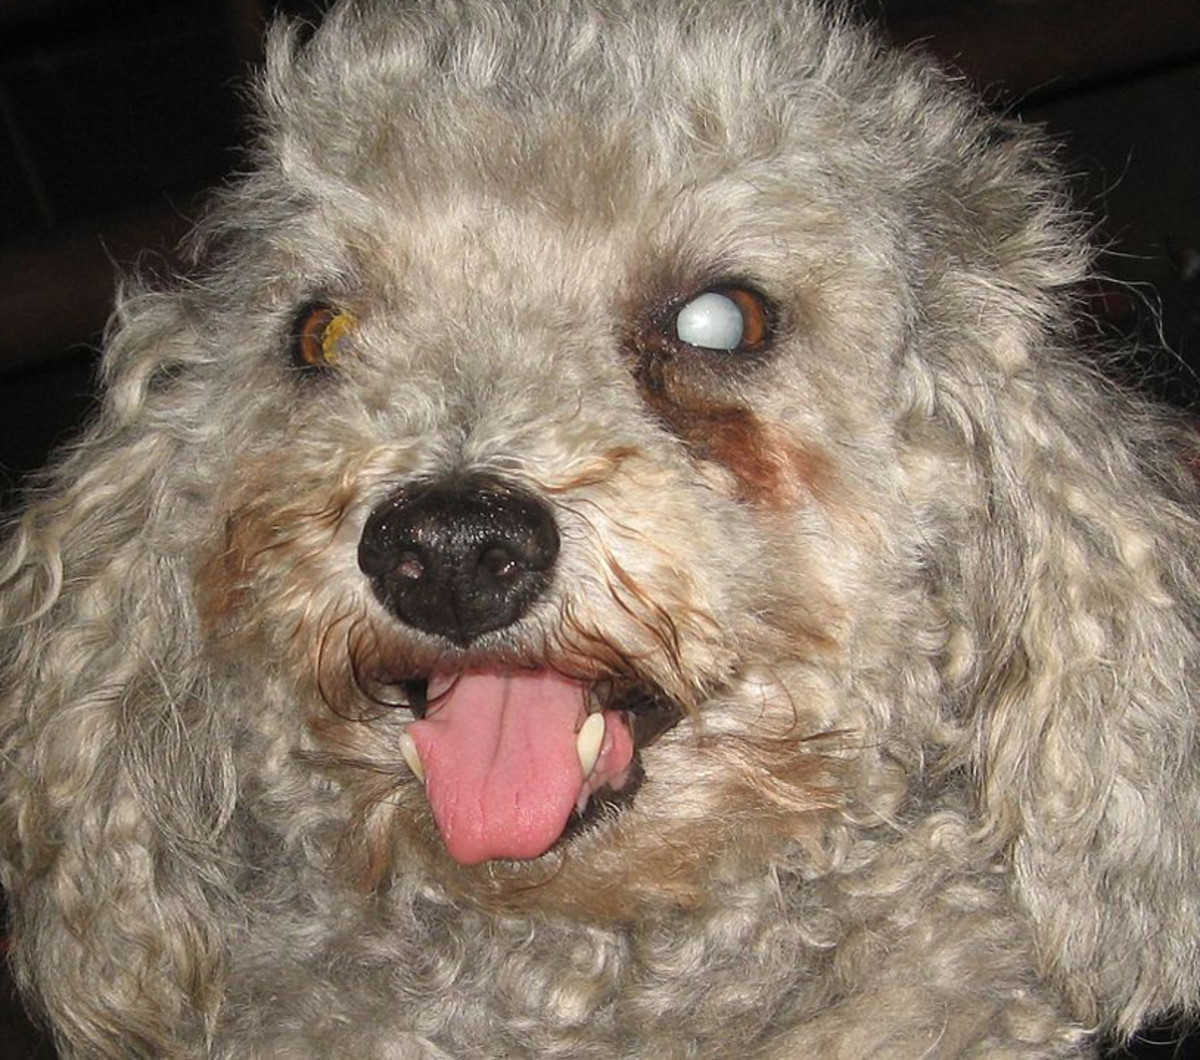 Cataracts are a common complication of canine diabetes, often causing sudden blindness.